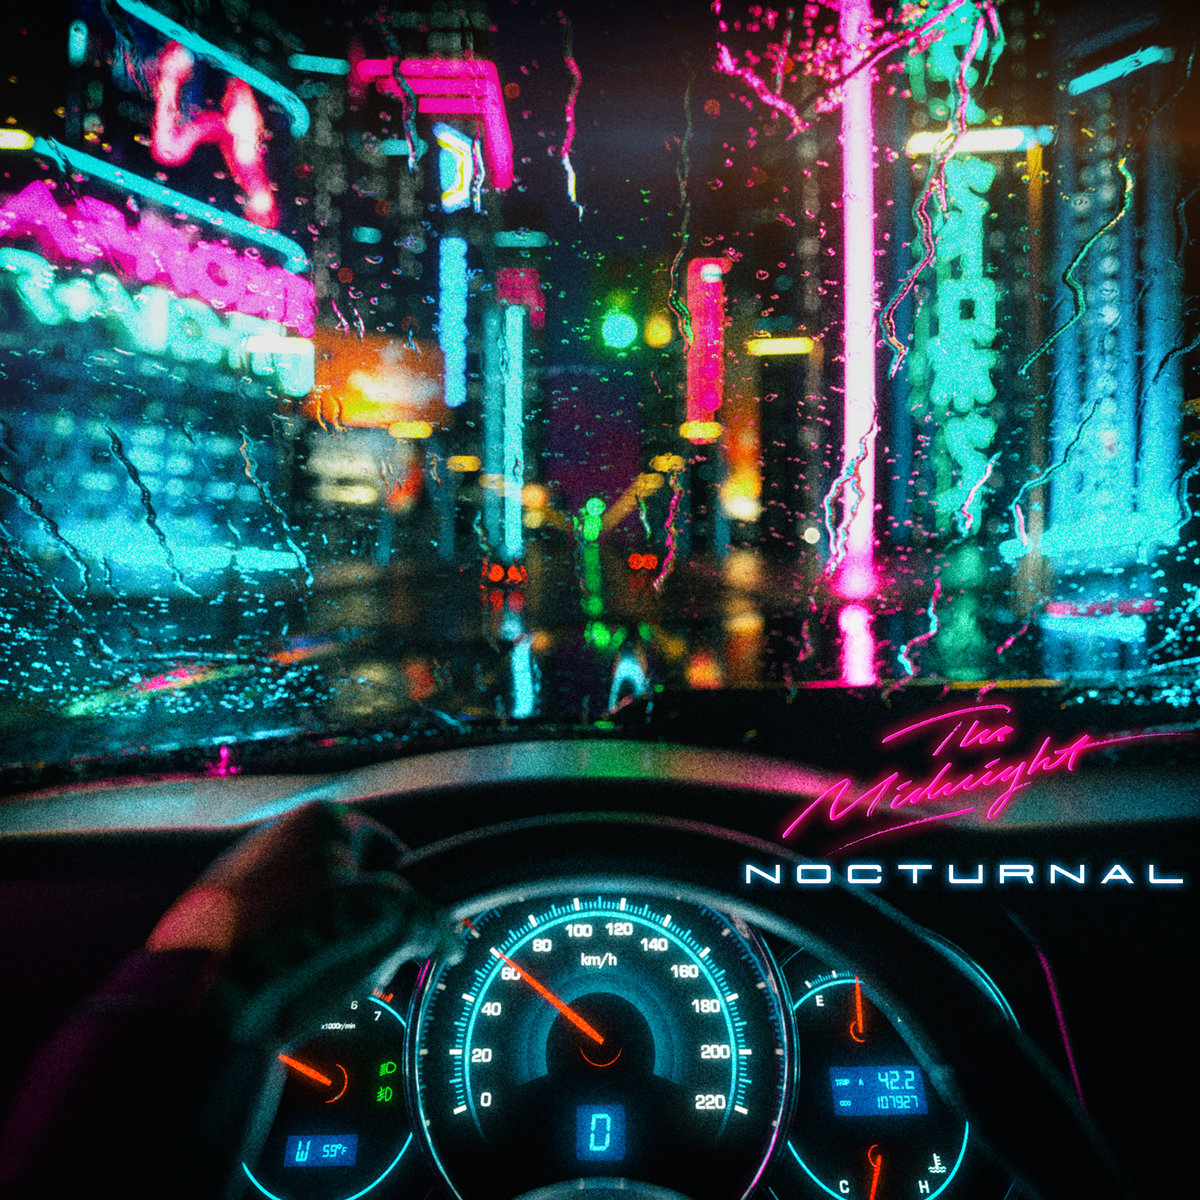 Cars Wallpaper With Names Retro Synthwave Outrun